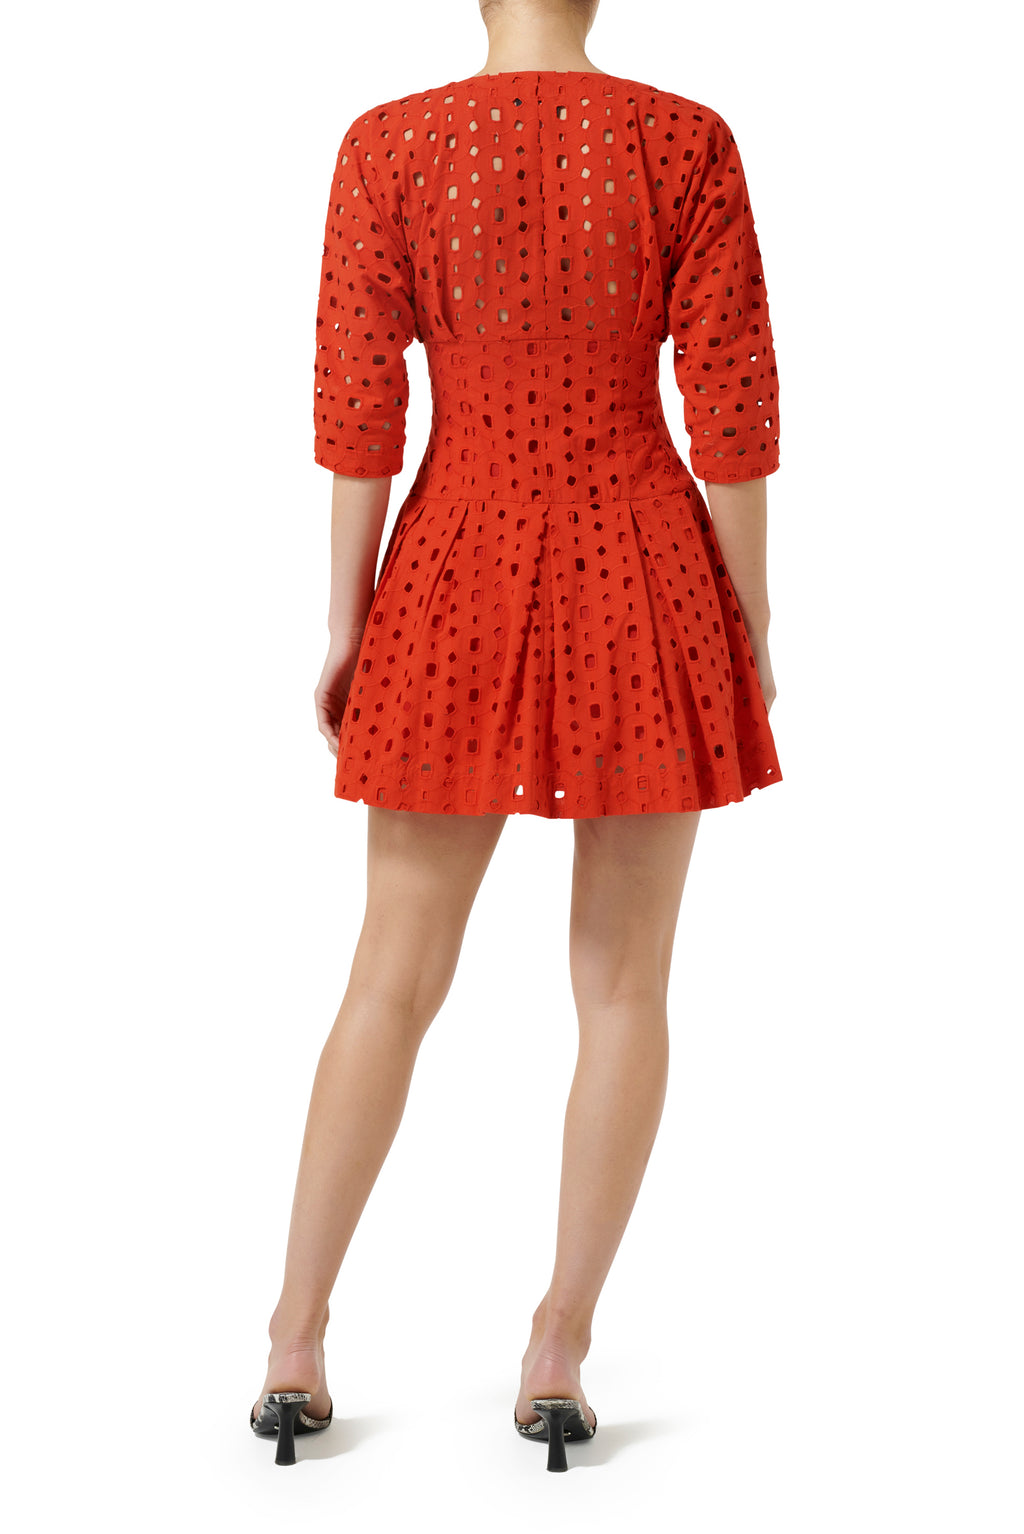 Pasadena Mini Dress - Blood Orange